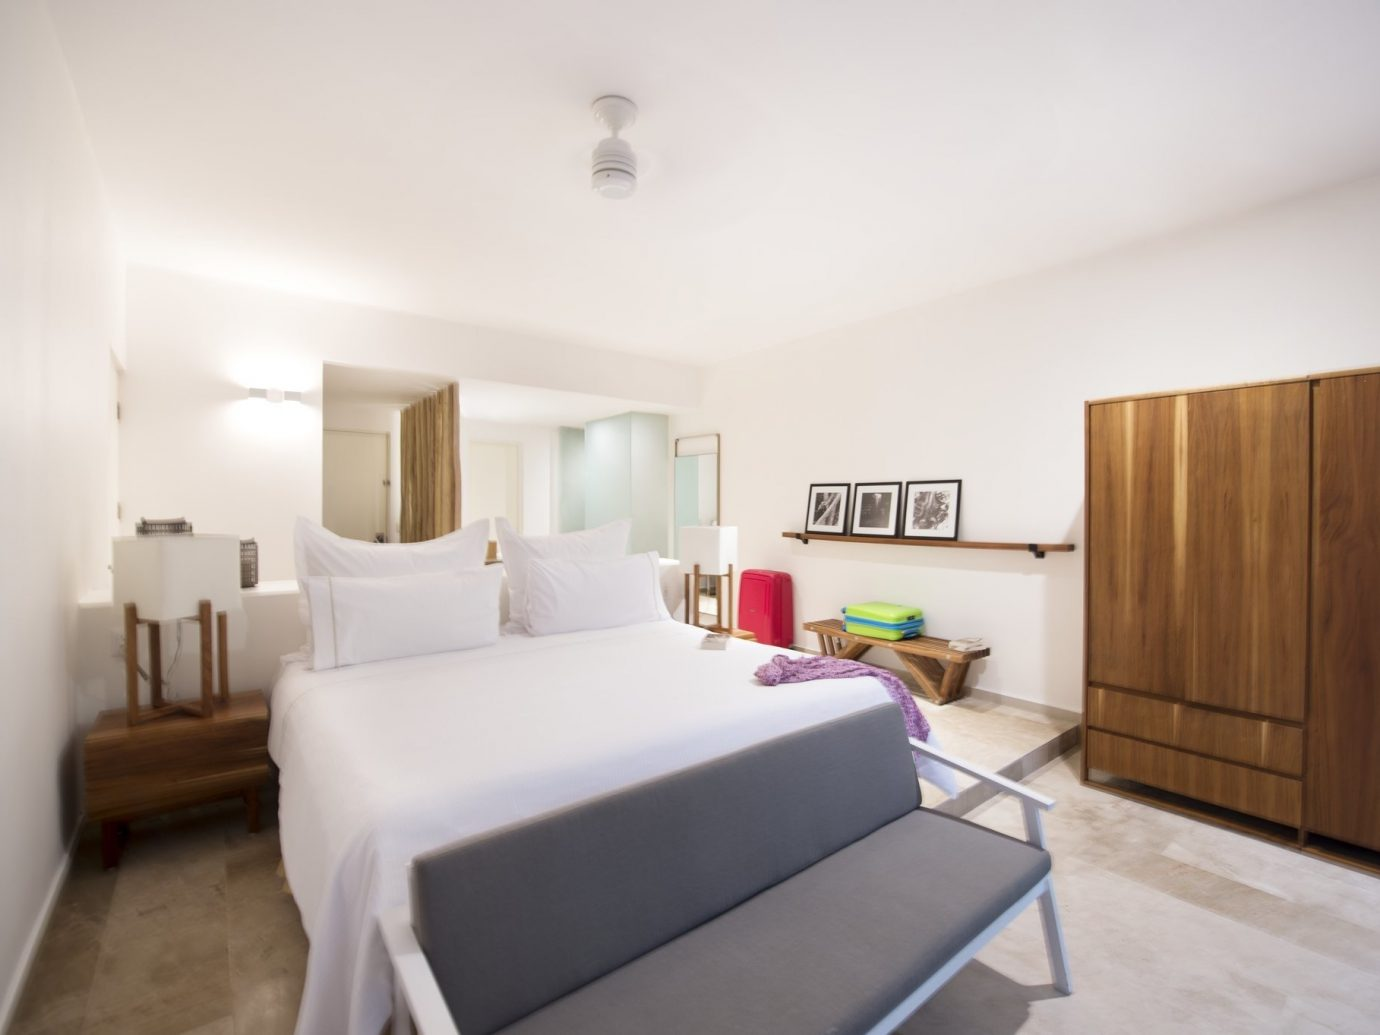 All-Inclusive Resorts Budget caribbean Hotels indoor floor wall room property Architecture Suite interior design ceiling real estate Bedroom estate hotel interior designer house bed frame furniture wood